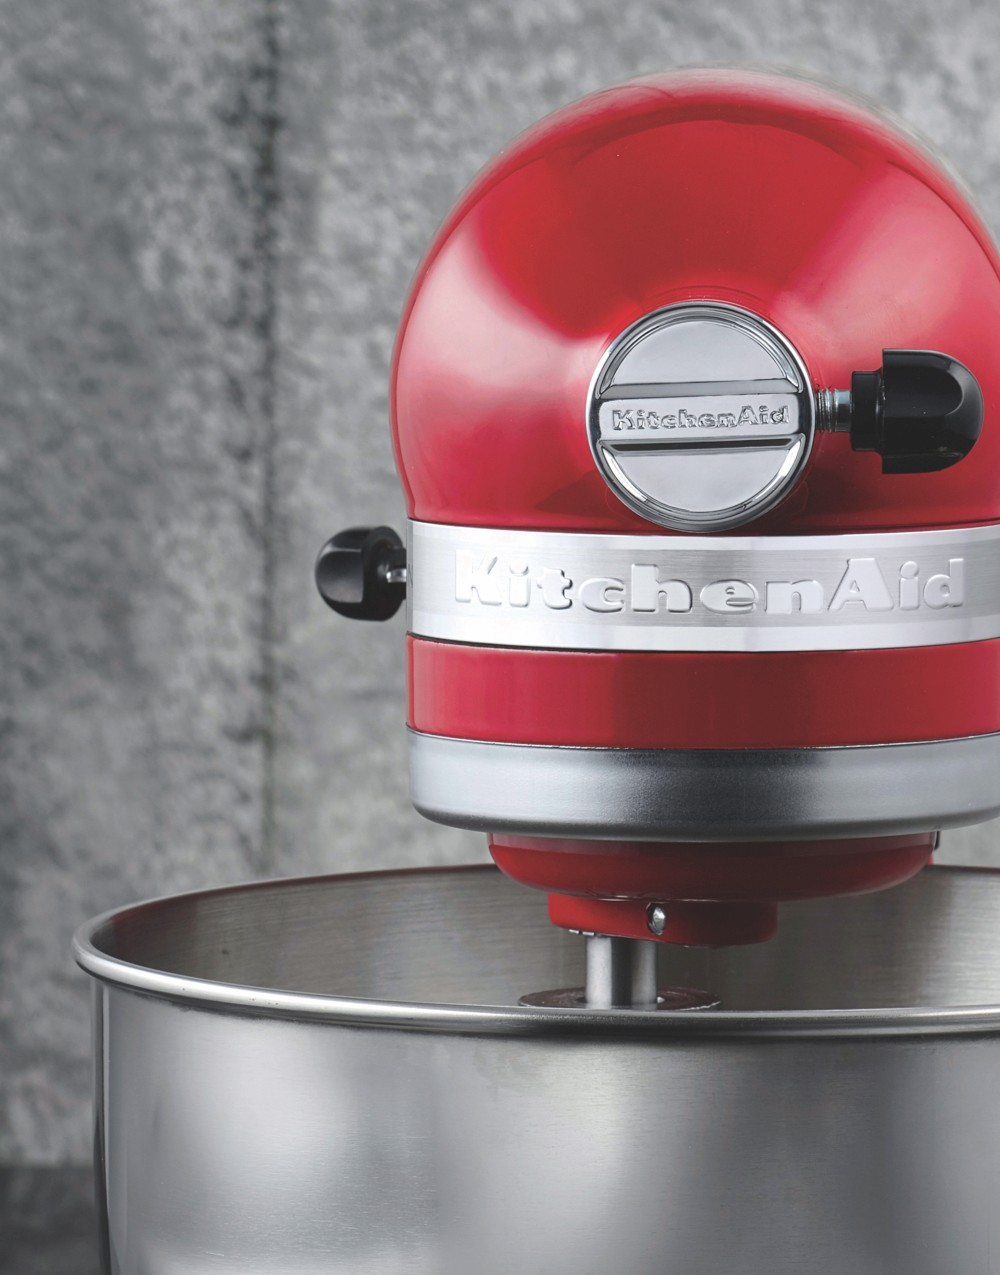 The KitchenAid stand mixer in Empire Red